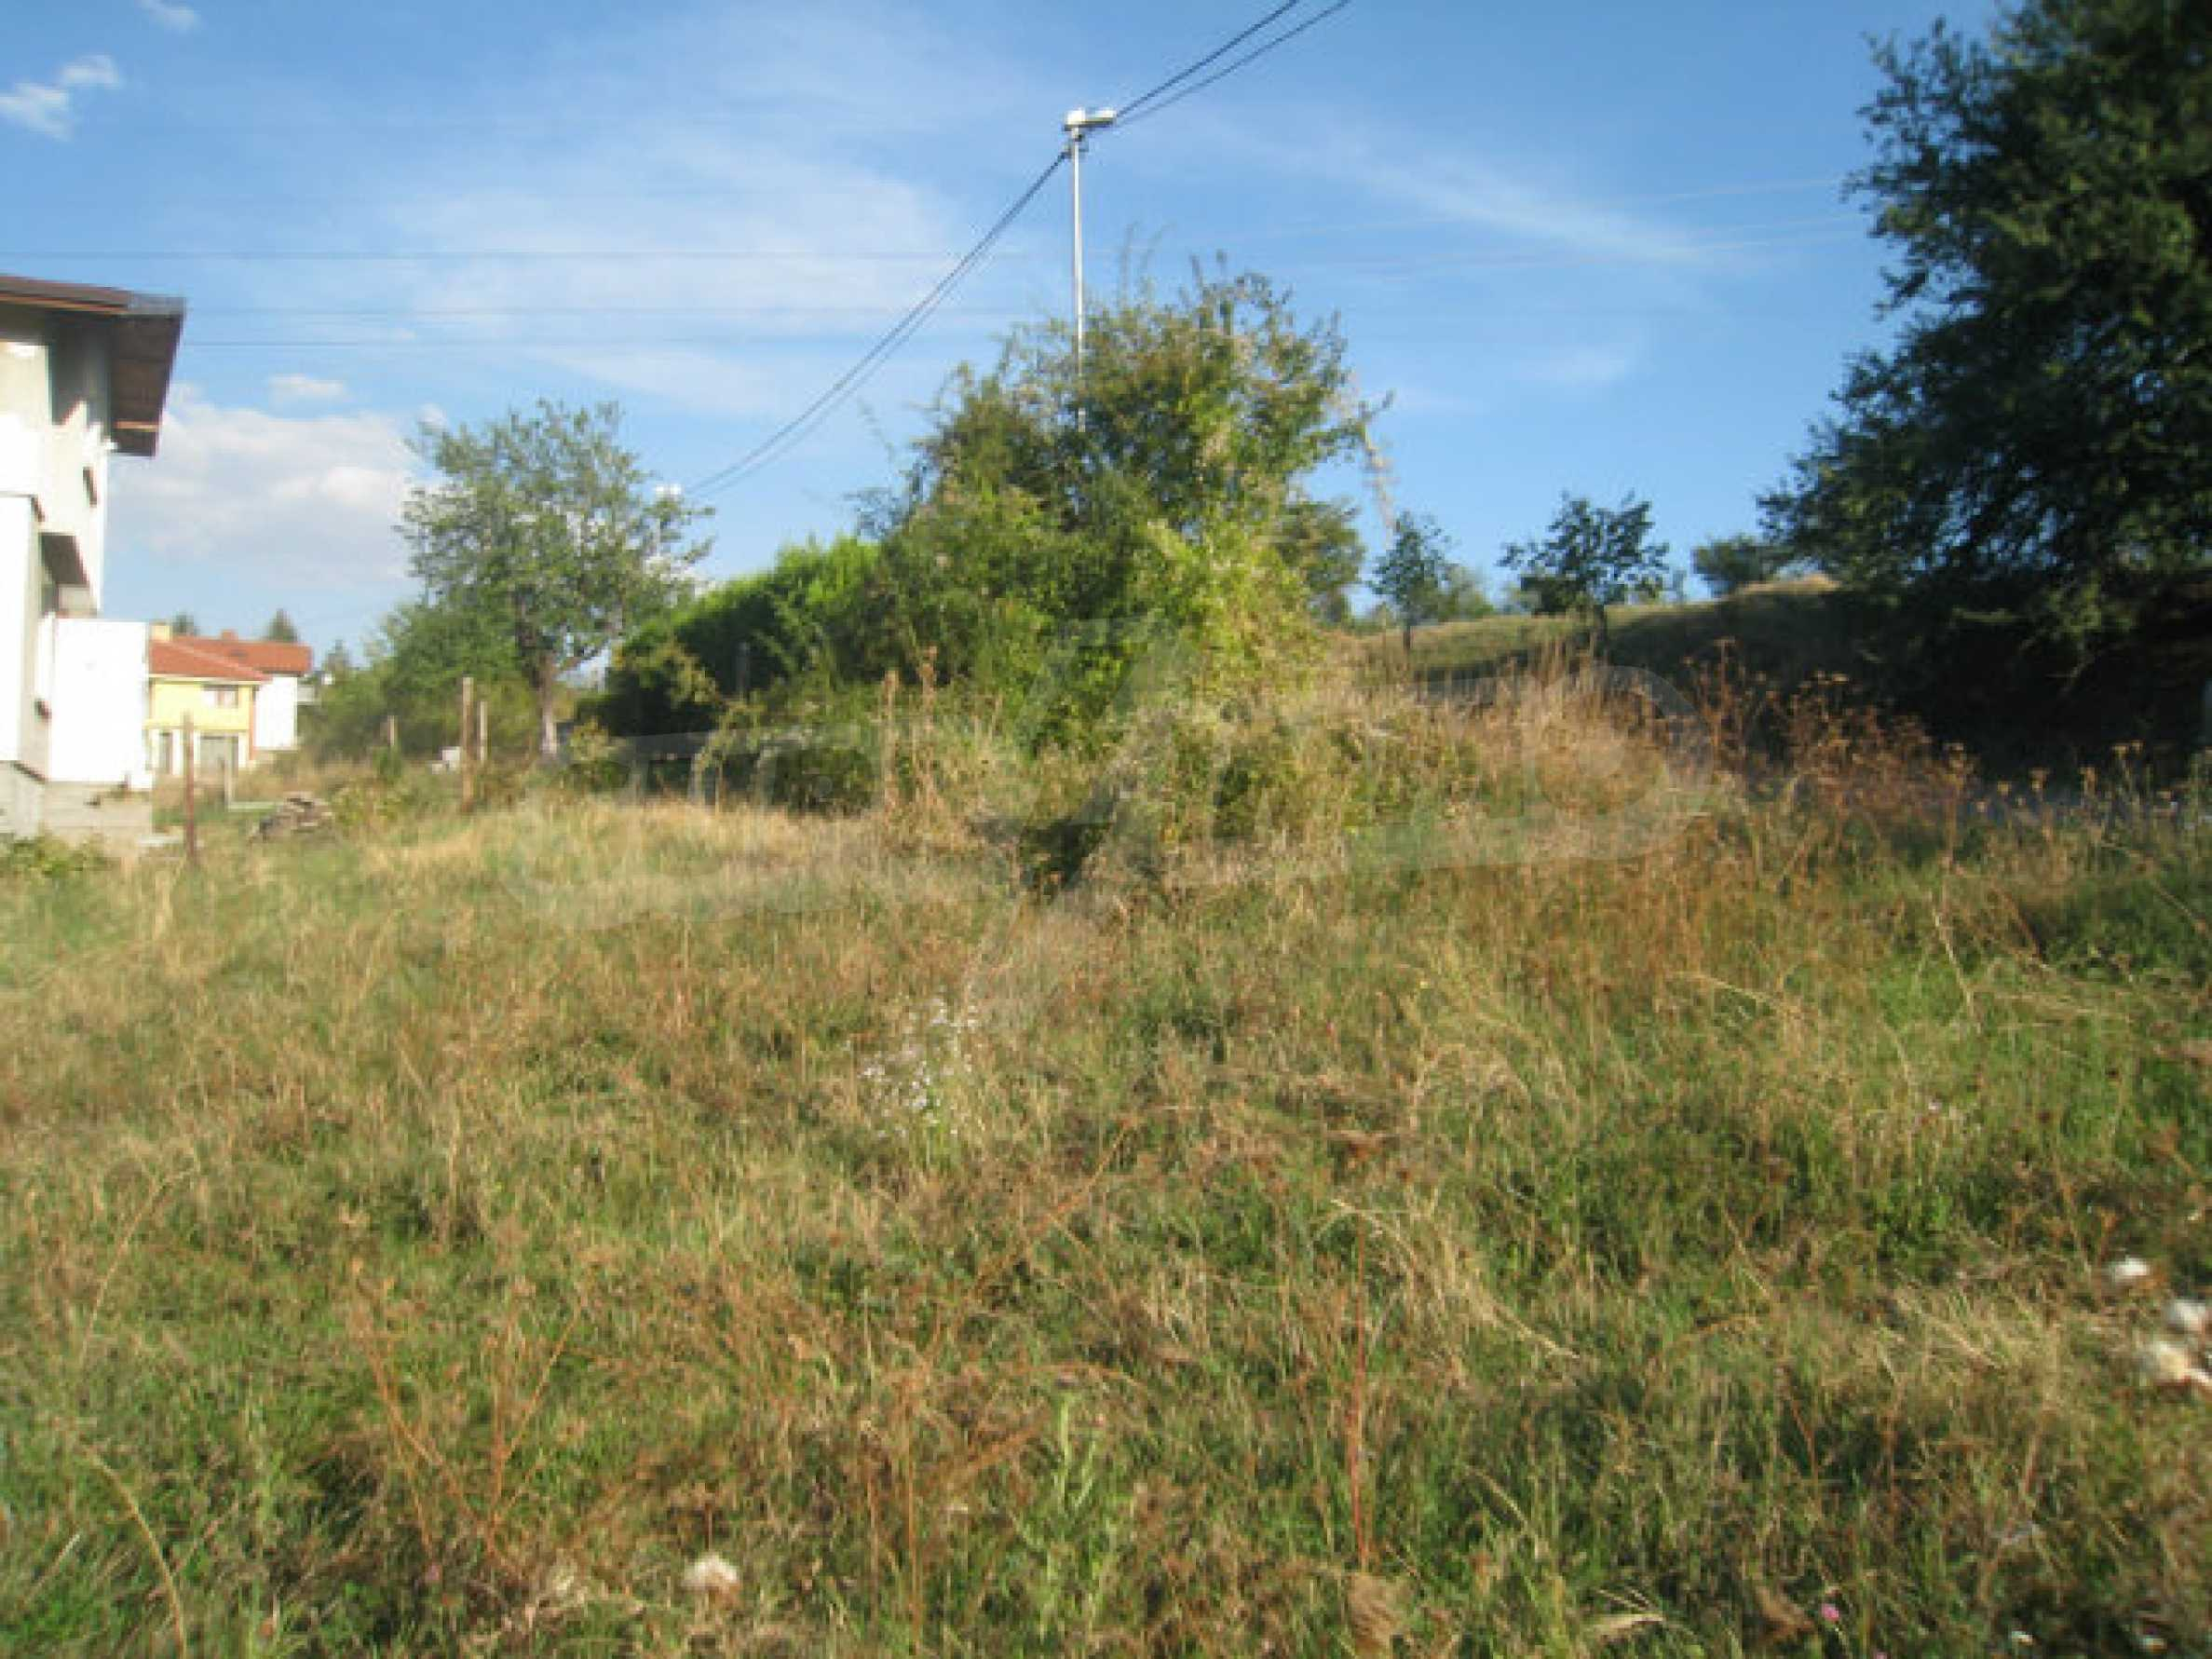 Regulated plot of land for rural private house or villa near Sofia 8